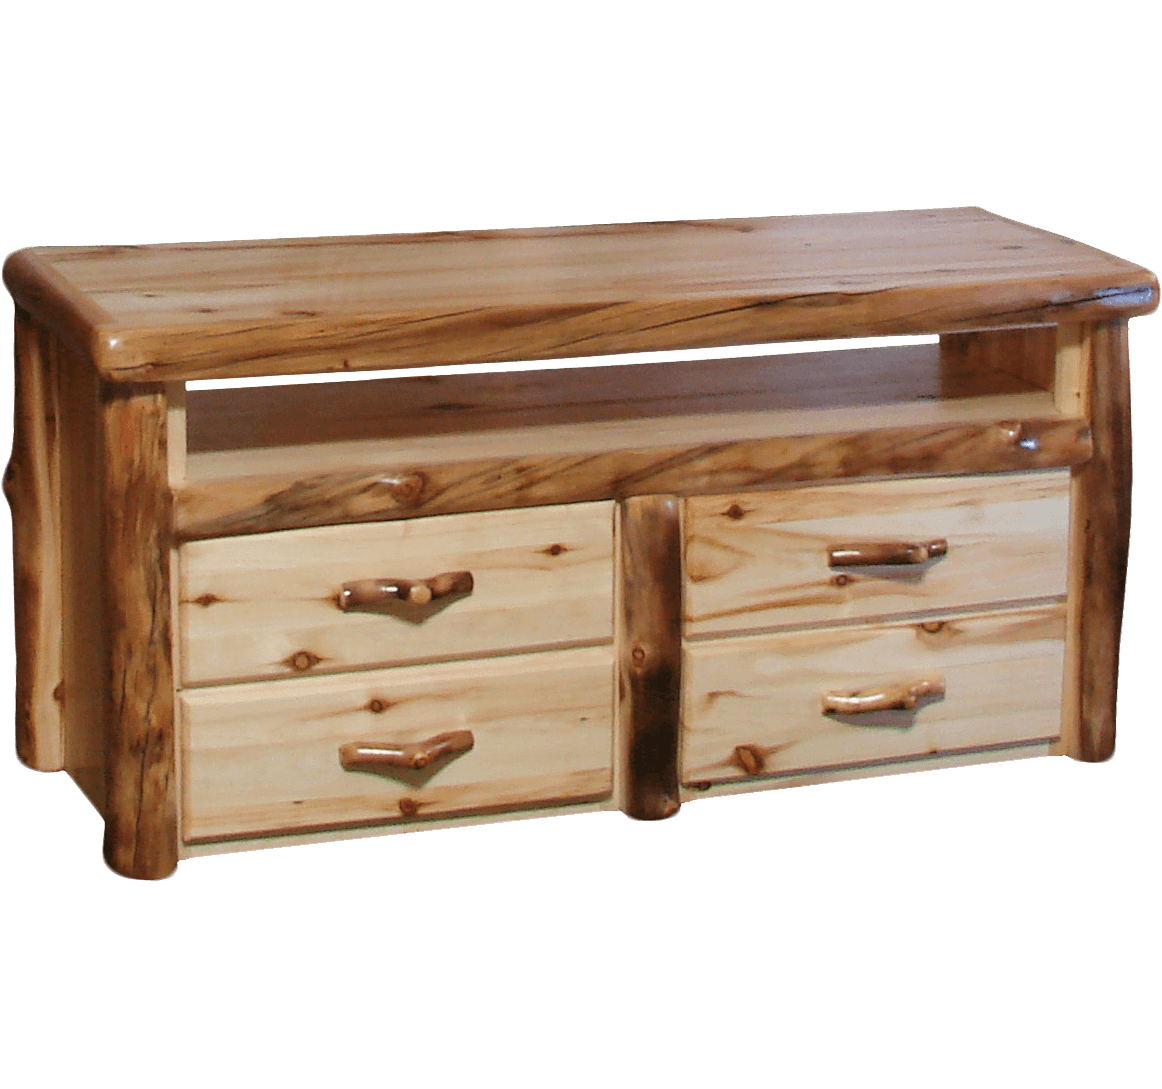 Log Furniture Tv Stand #45 - Aspen Log 4 Drawer TV Stand